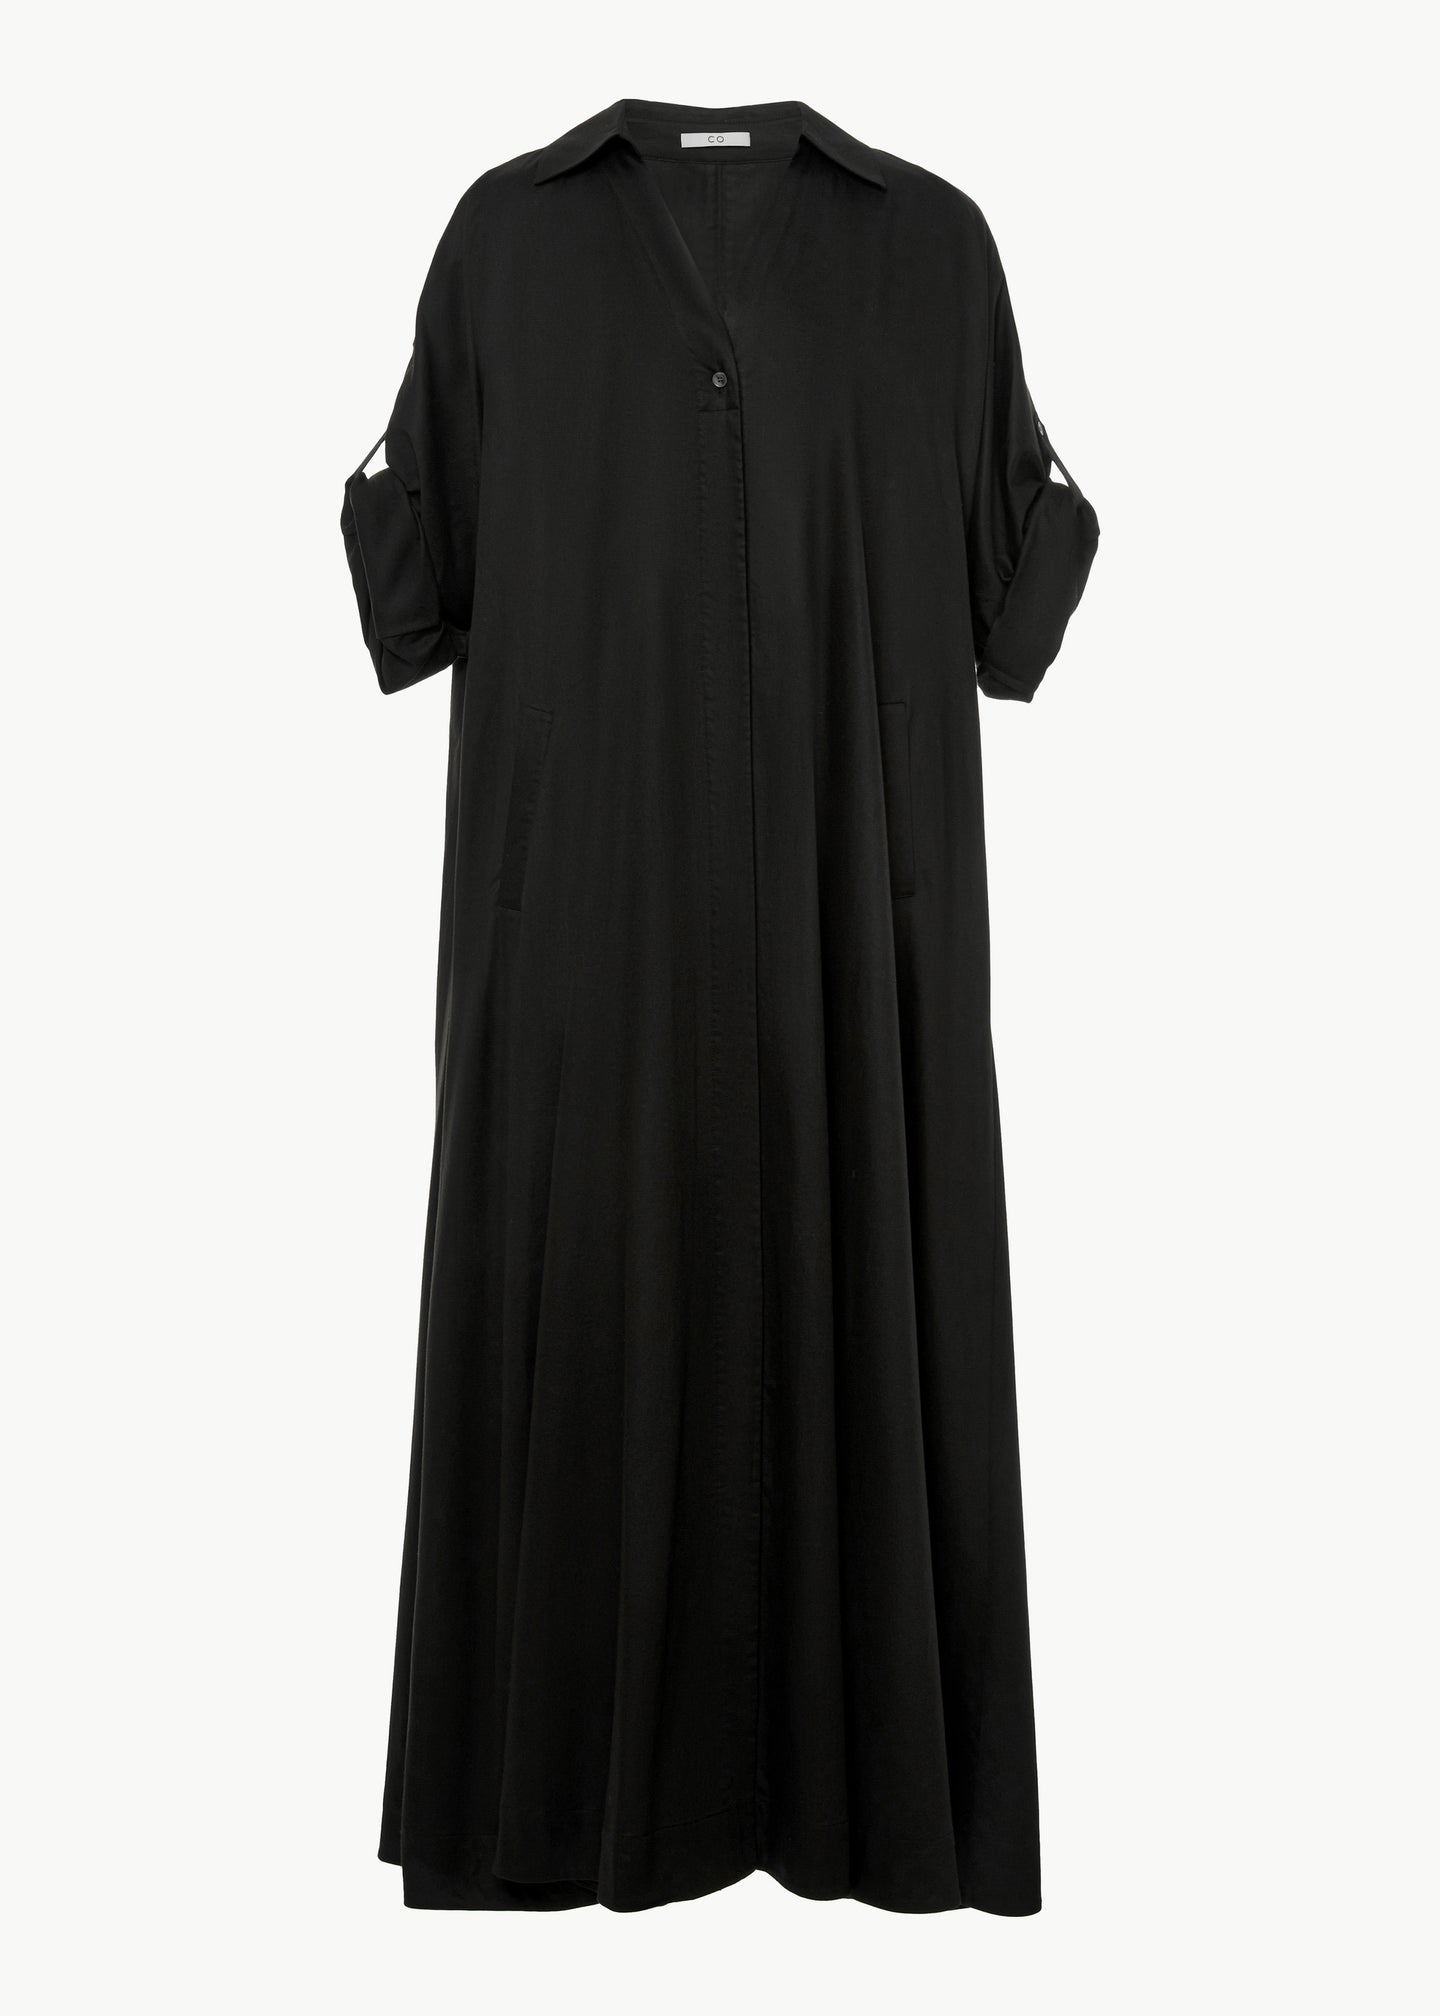 Rolled Sleeve Dress in Japanese Cotton - Black - Co Collections